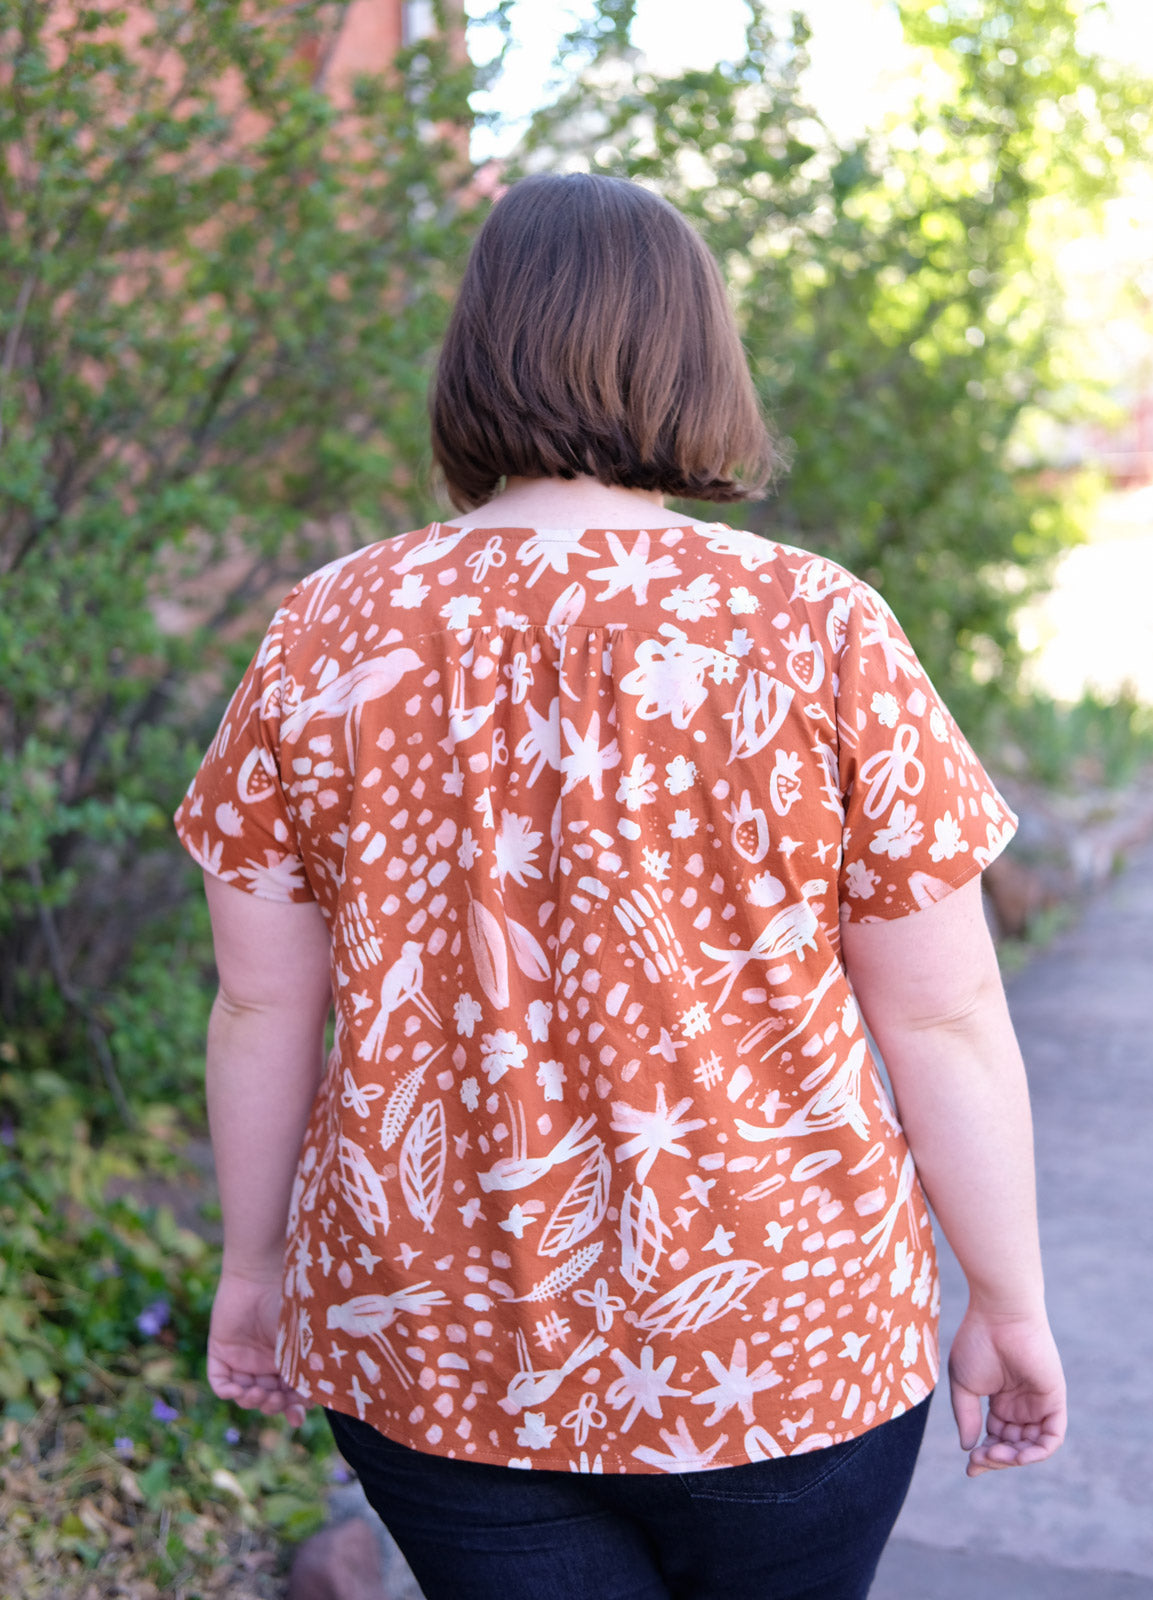 Back view of Caitlin in her burnt orange Montrose